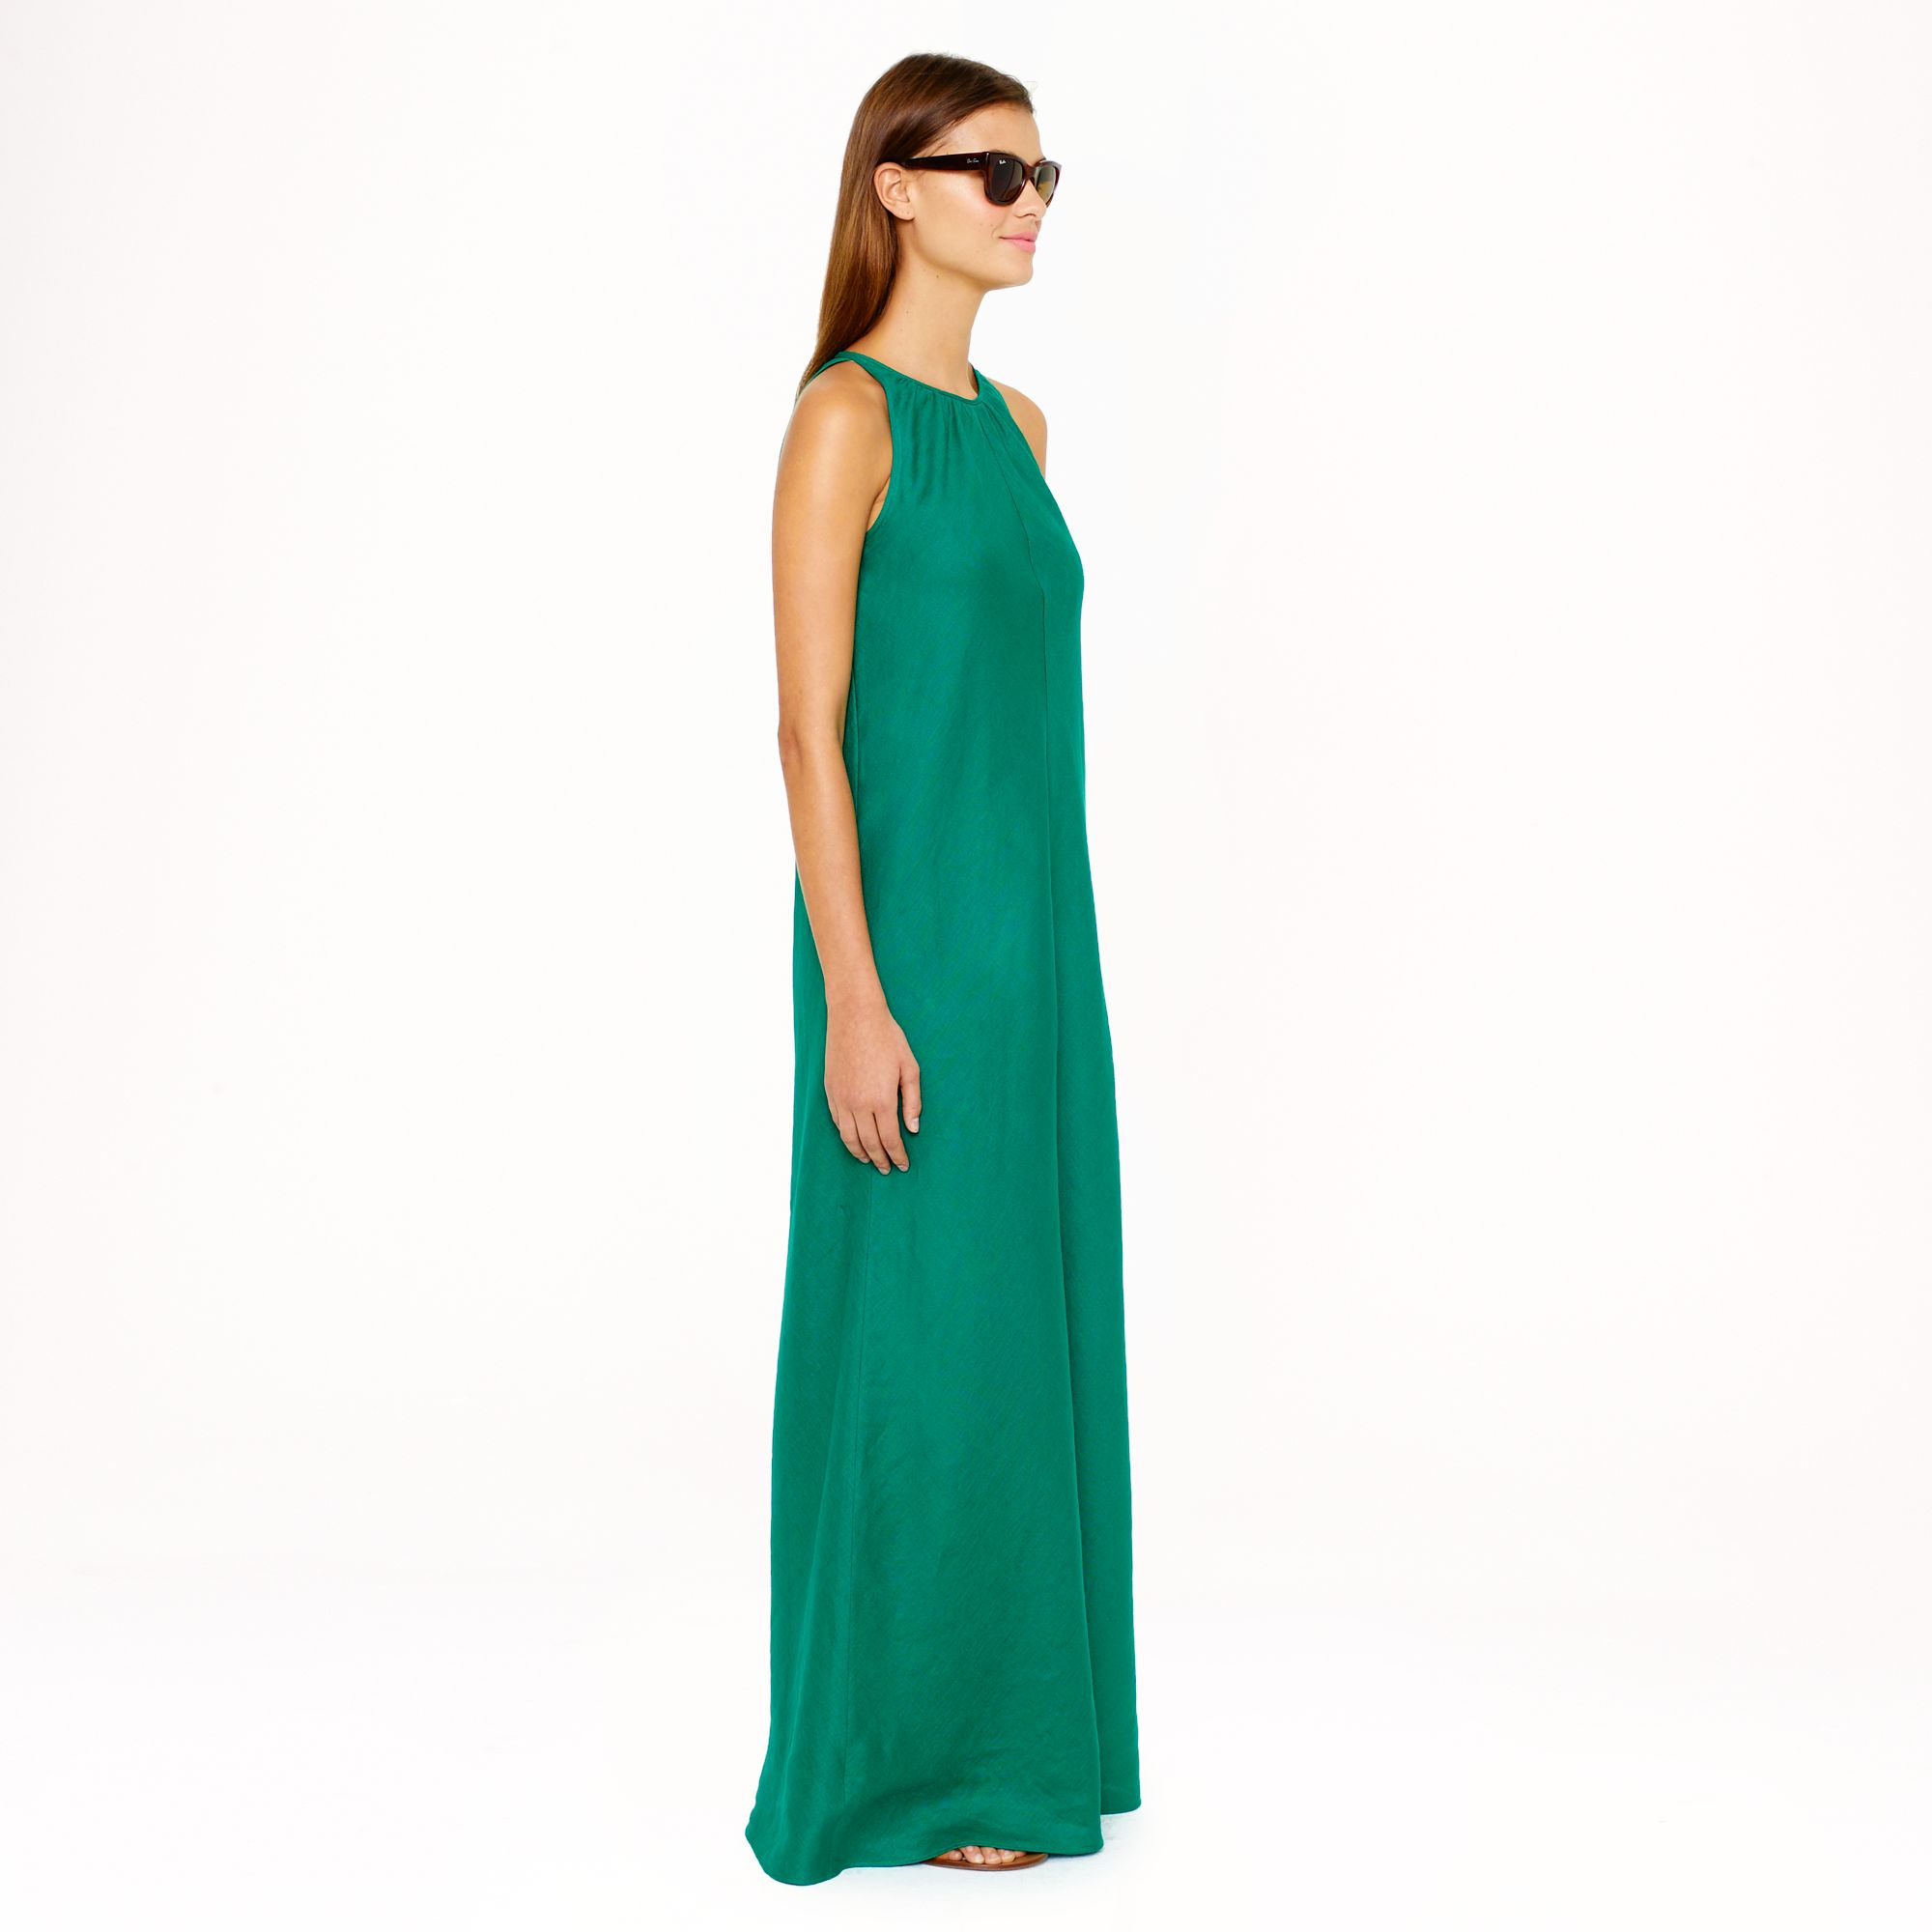 Lyst - J.Crew Linen Maxidress in Green